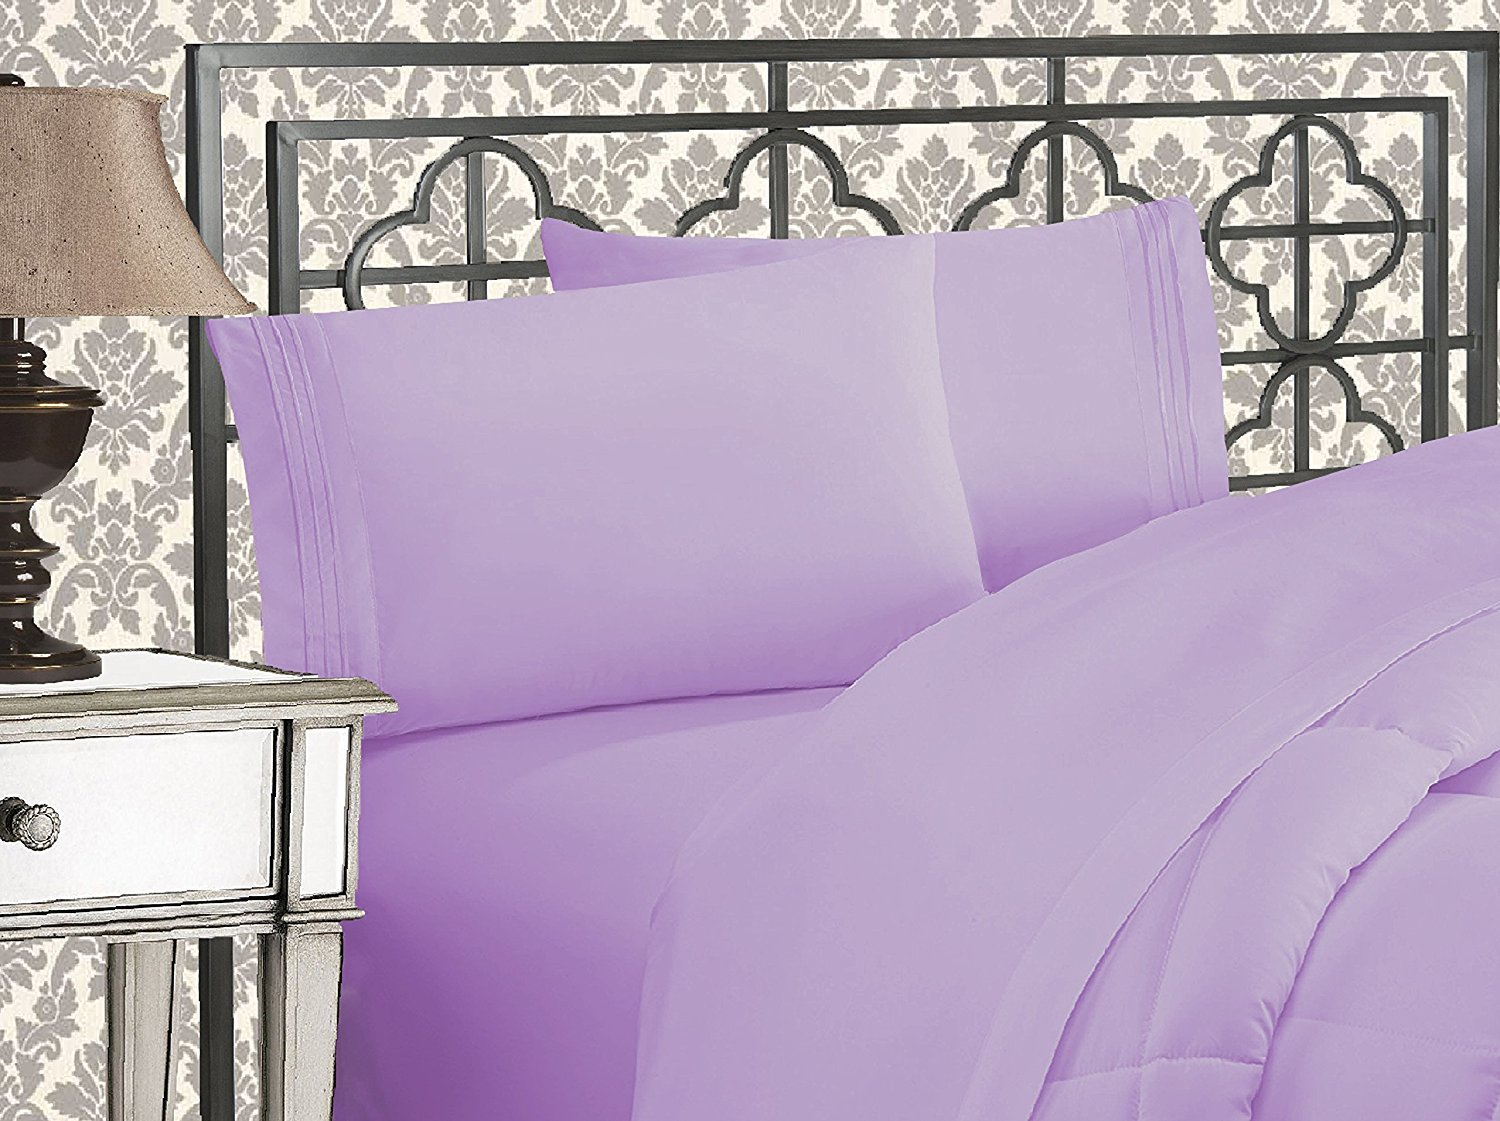 Elegant Comfort 1500 Thread Count Wrinkle Resistant Egyptian Quality Ultra Soft Luxurious 4-Piece Bed Sheet Set, Full, Lilac by Elegant Comfort